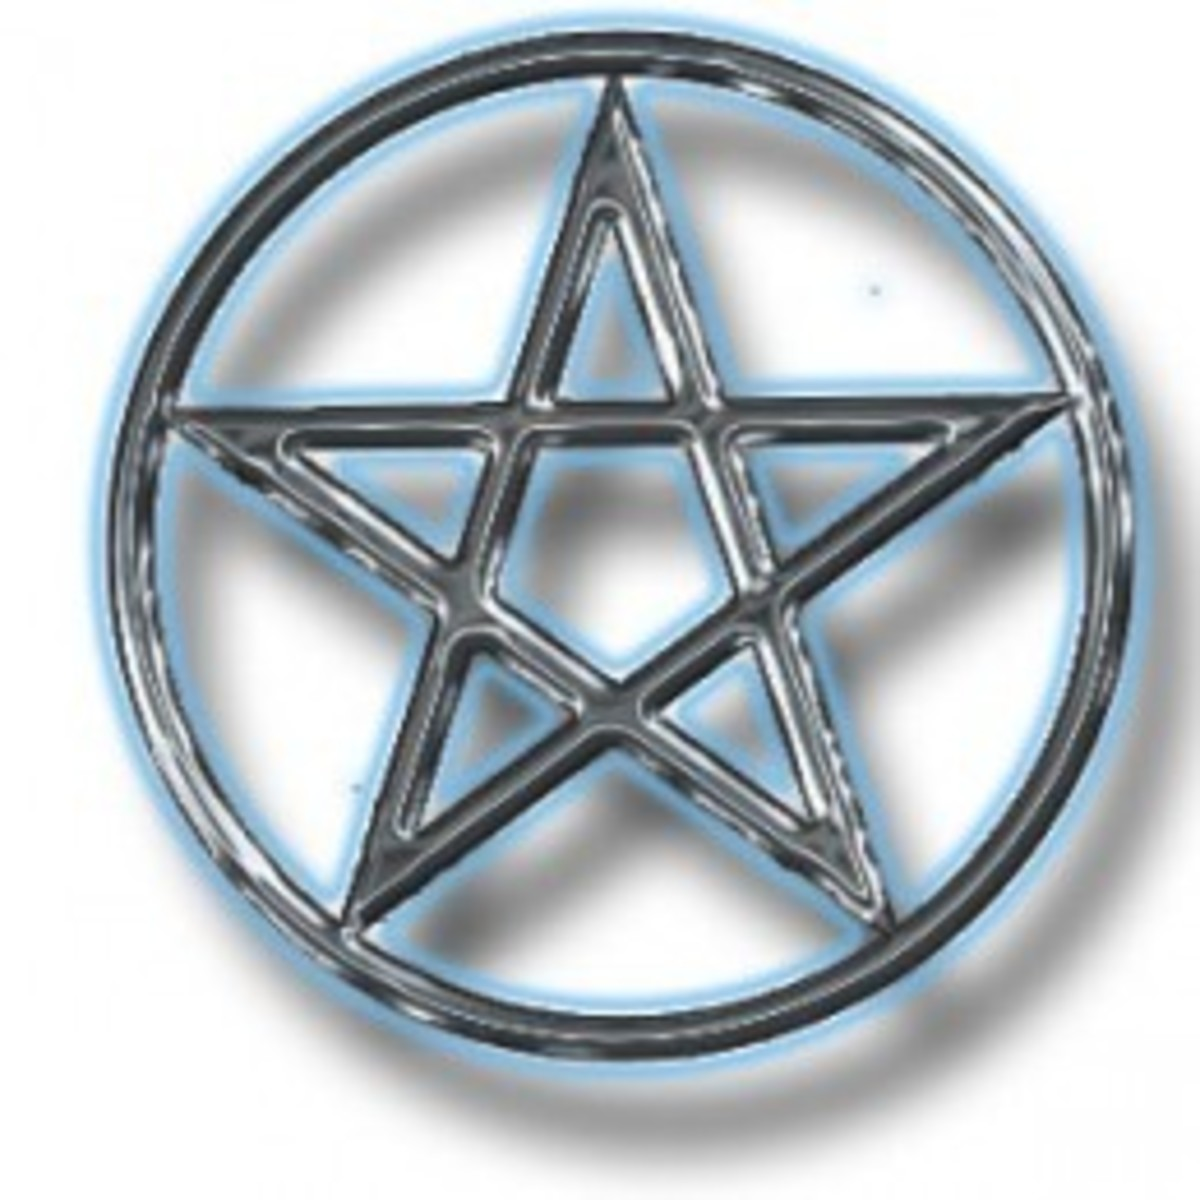 A Witch Who Cannot Hex, Cannot Heal: One Wiccan's Perspective on this Controversial Claim